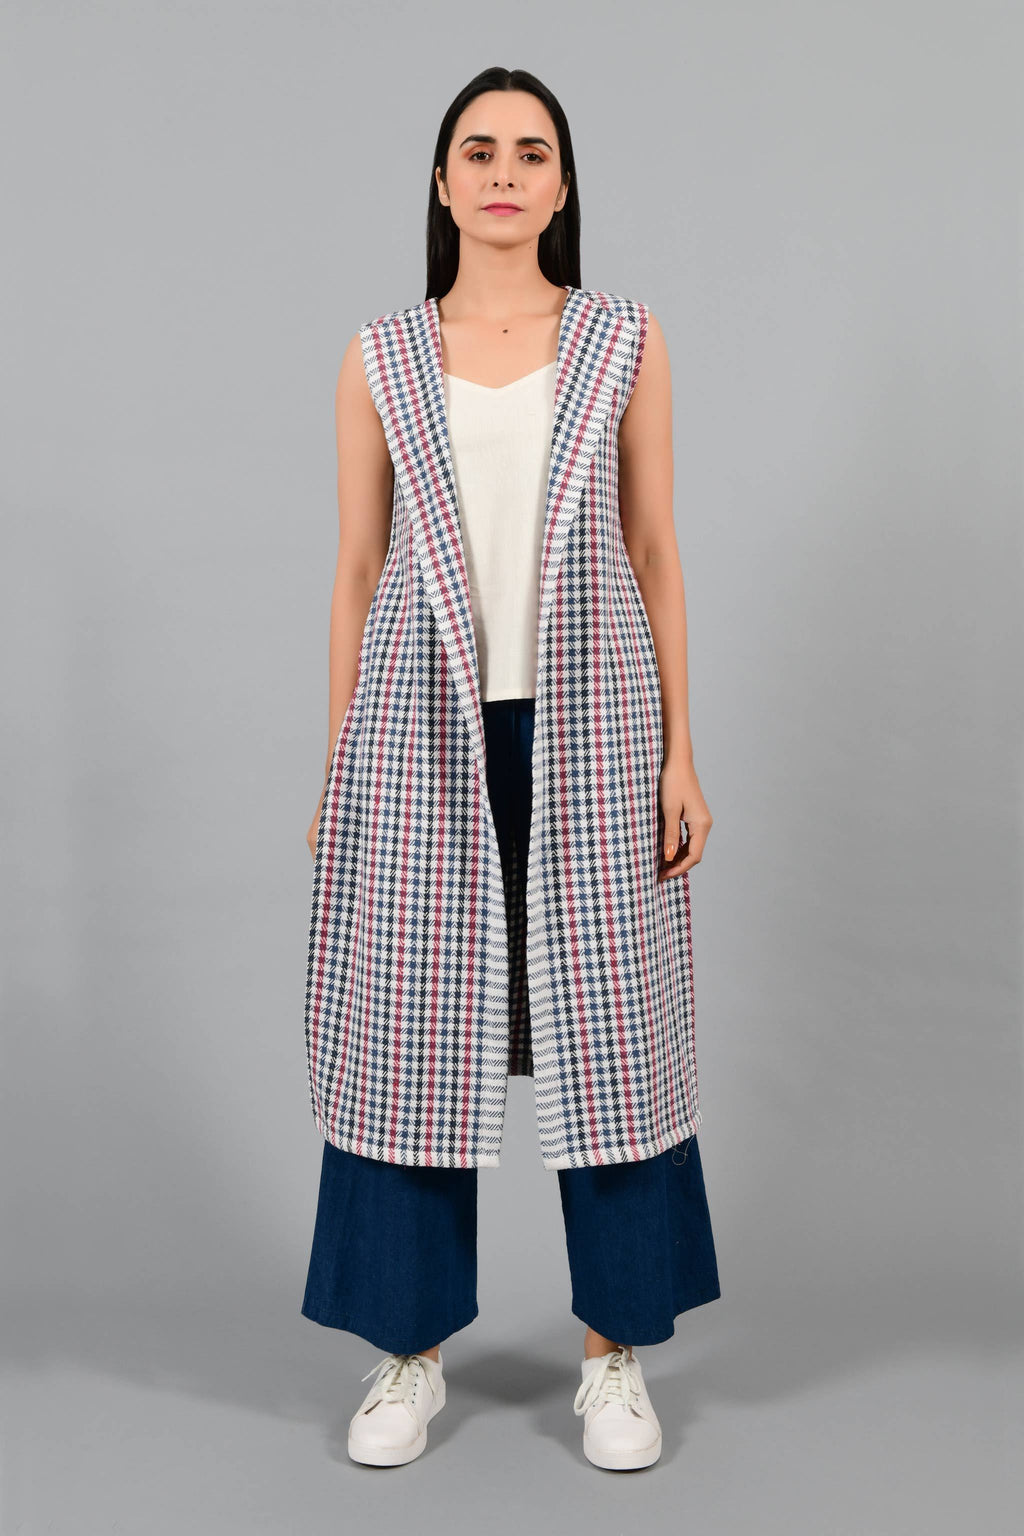 Front pose of an Indian Womenswear female model wearing Red and Blue handspun and handwoven khadi long Jacket over an off-white cashmere cotton dress by Cotton Rack.